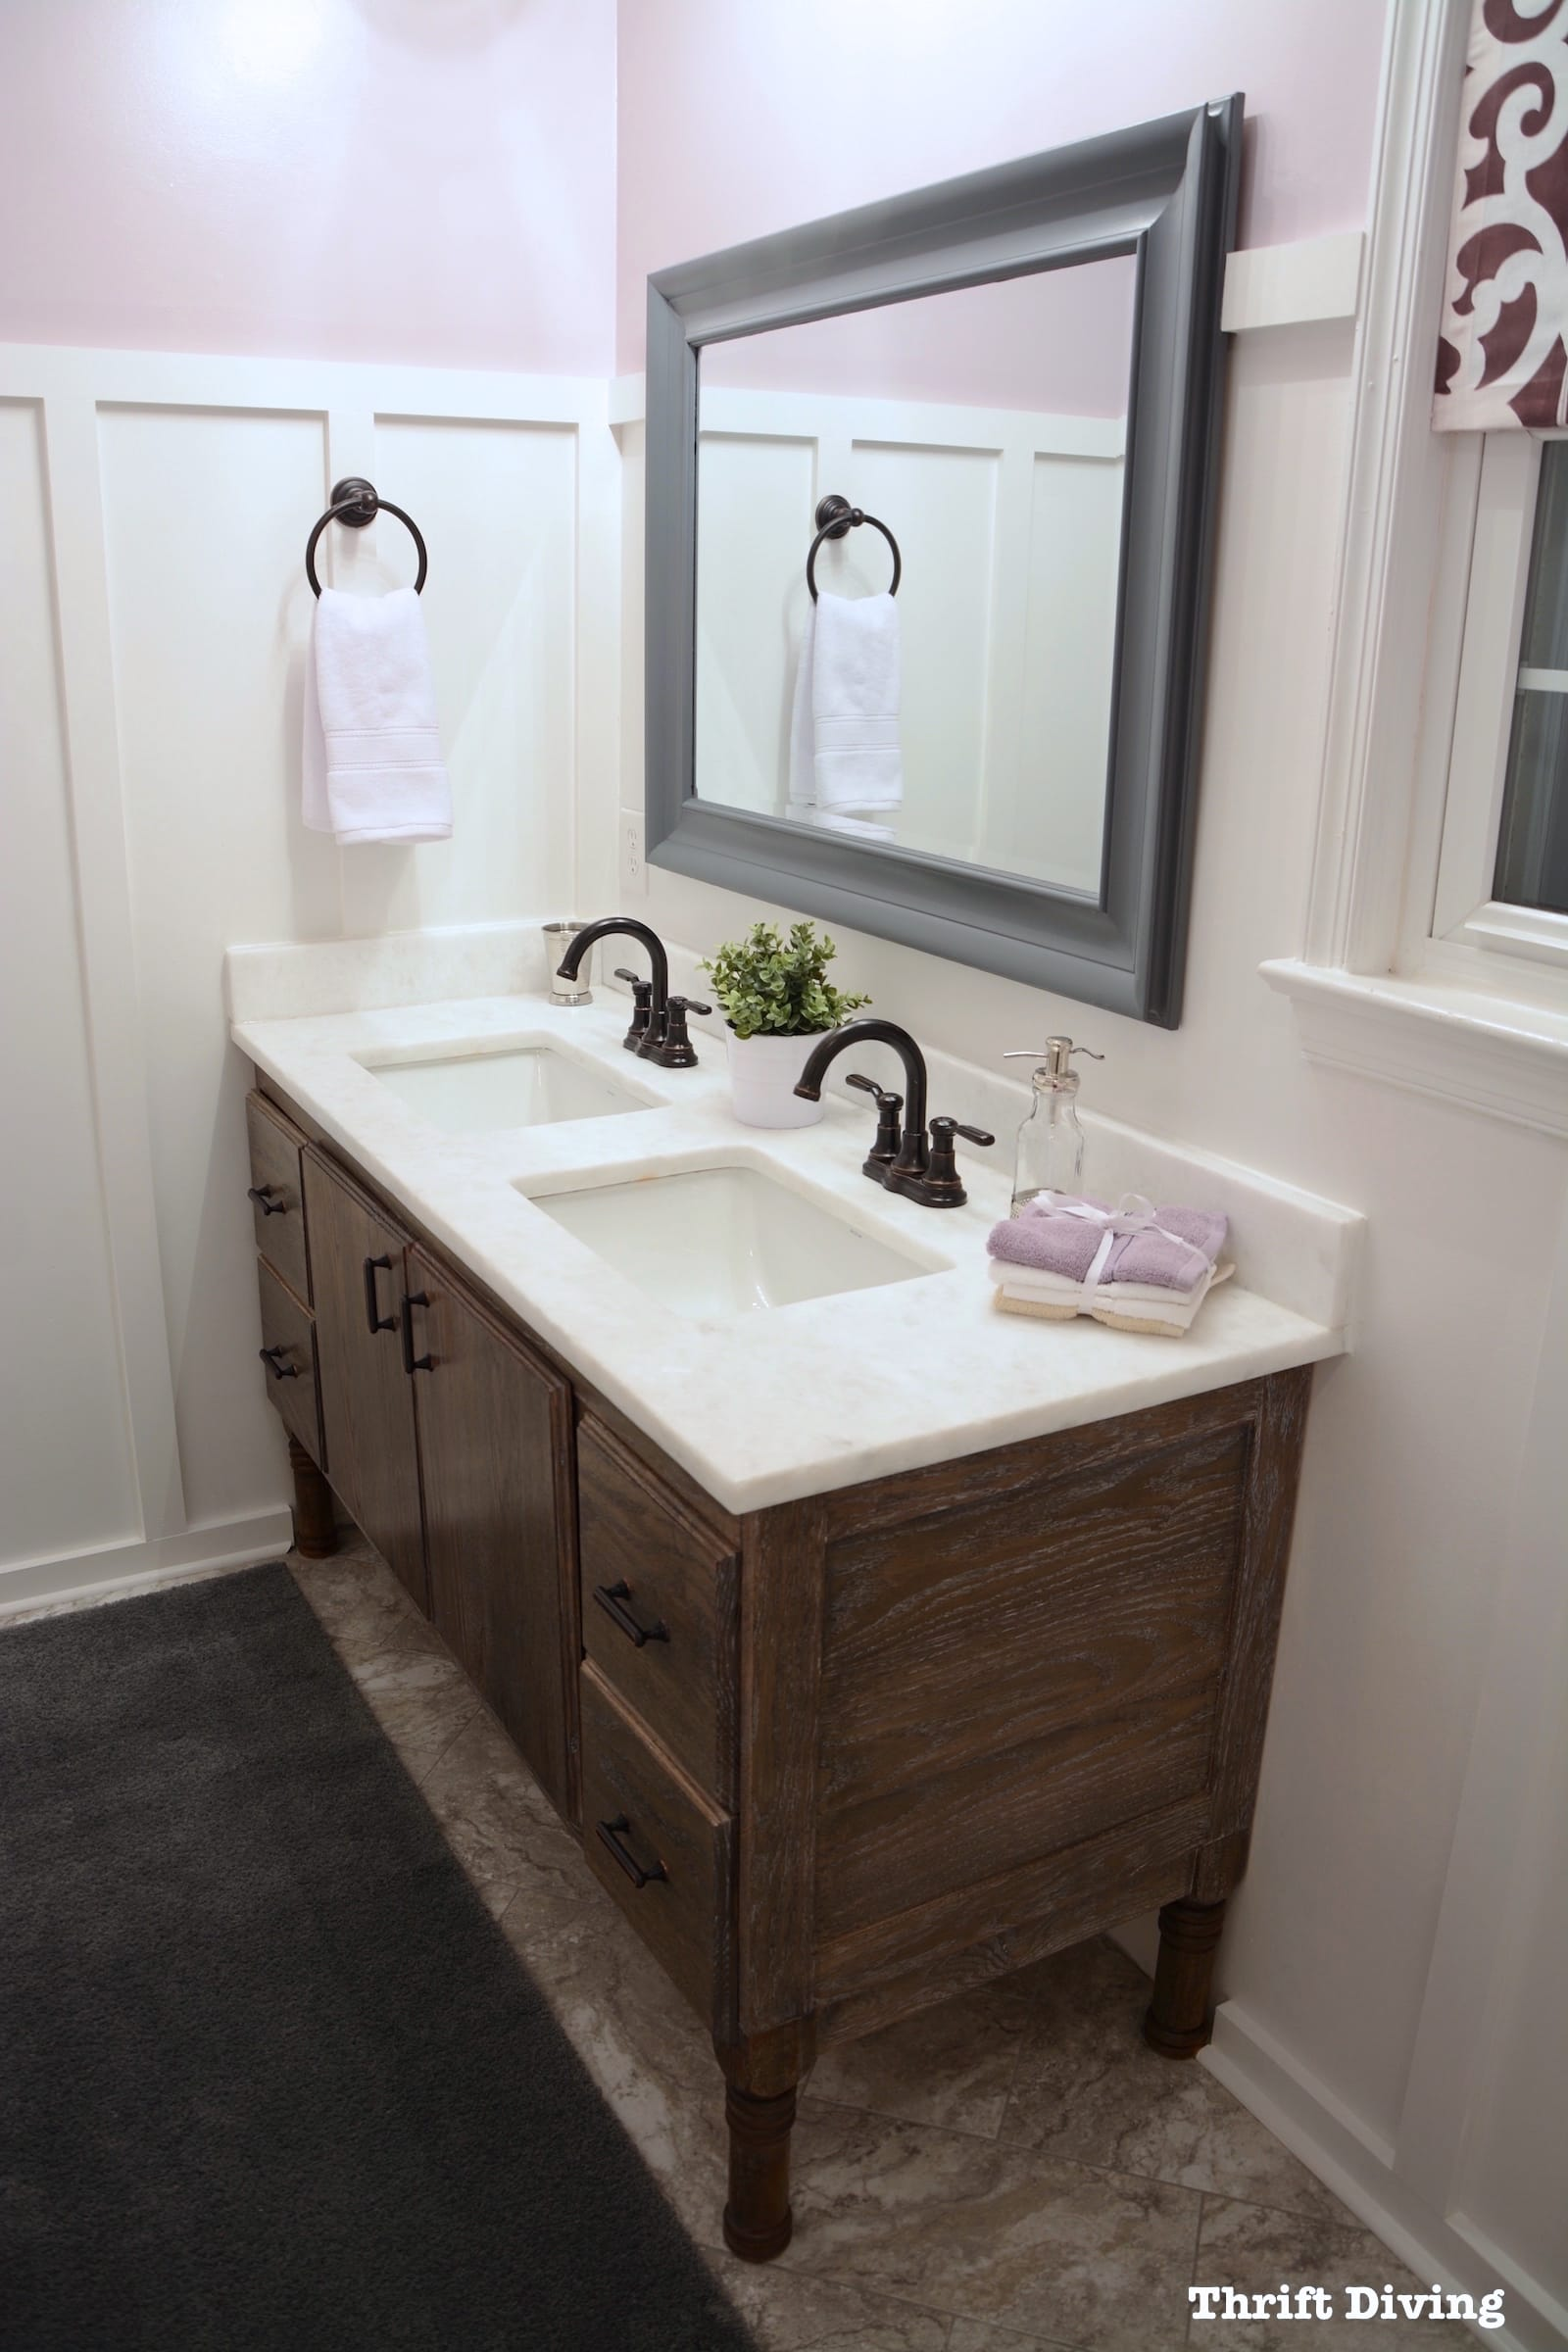 How to Build a 60 DIY Bathroom Vanity From Scratch